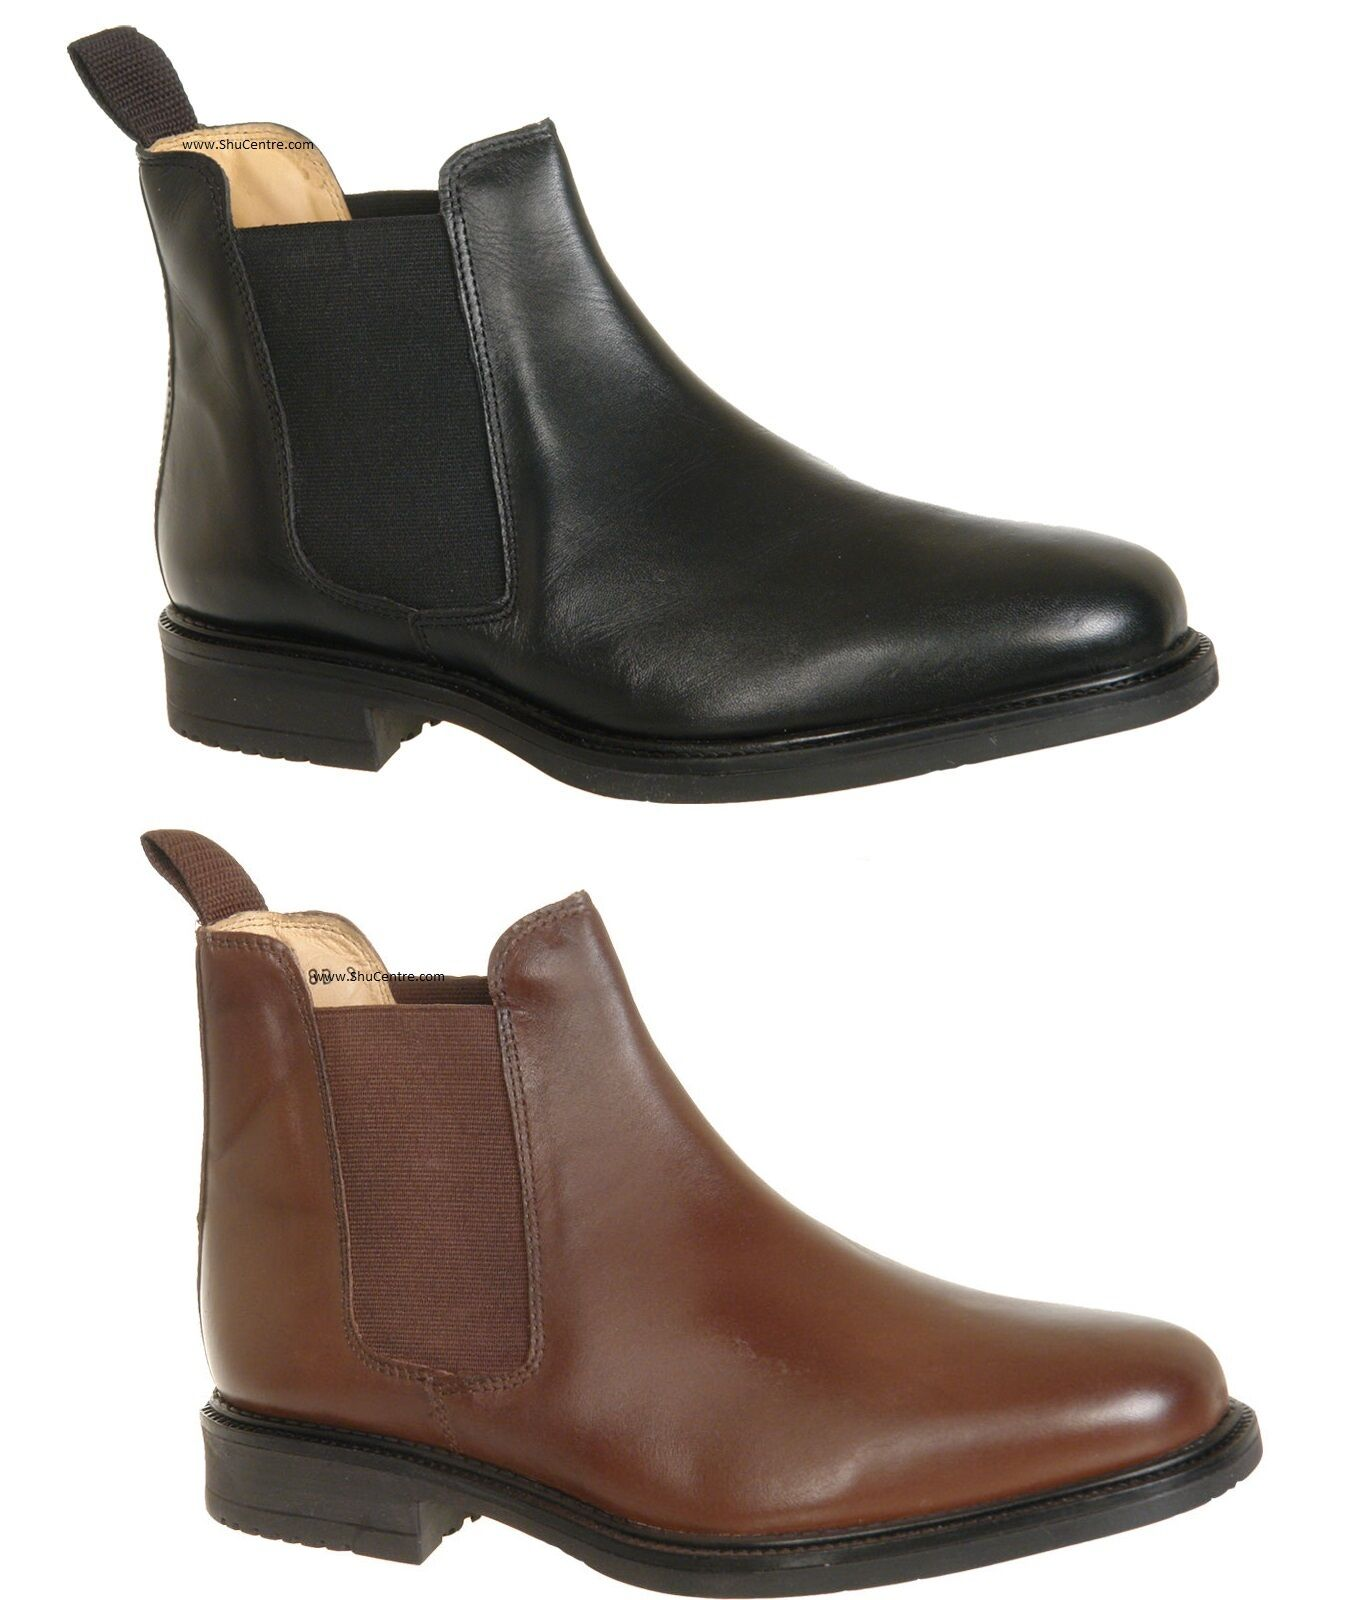 Roamers Pelle Fuller flessibile Gusset JIM Wide Fit Twin Gusset flessibile Chelsea Boot SCARPA 9024bc